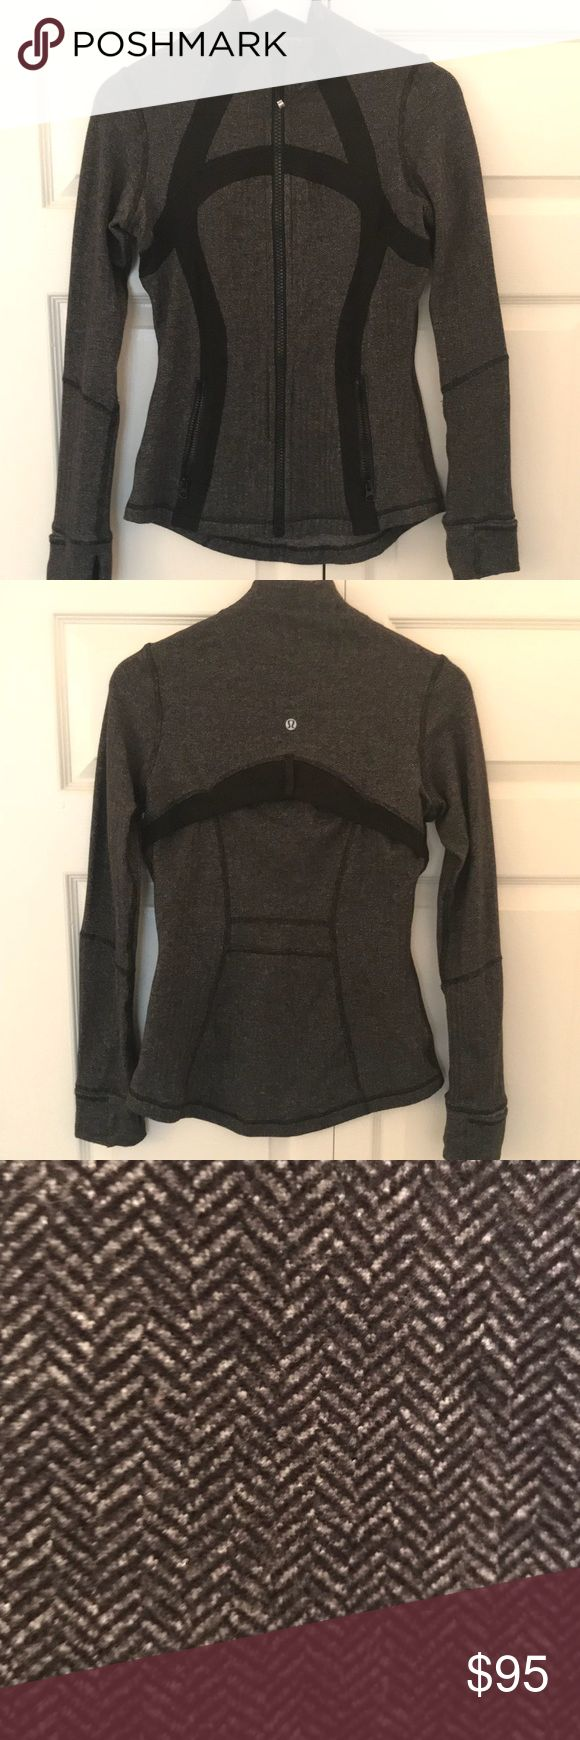 """Lululemon Herringbone Define Jacket Lululemon Herringbone Define Jacket. VEUC. Rare pattern! They no longer sell the define jacket in this pattern! No signs of wear other than very very minimal pills on the sleeves. Size 6. Rip tag was cut off but that's the only """"flaw"""". Open to reasonable offers lululemon athletica Tops Sweatshirts & Hoodies"""